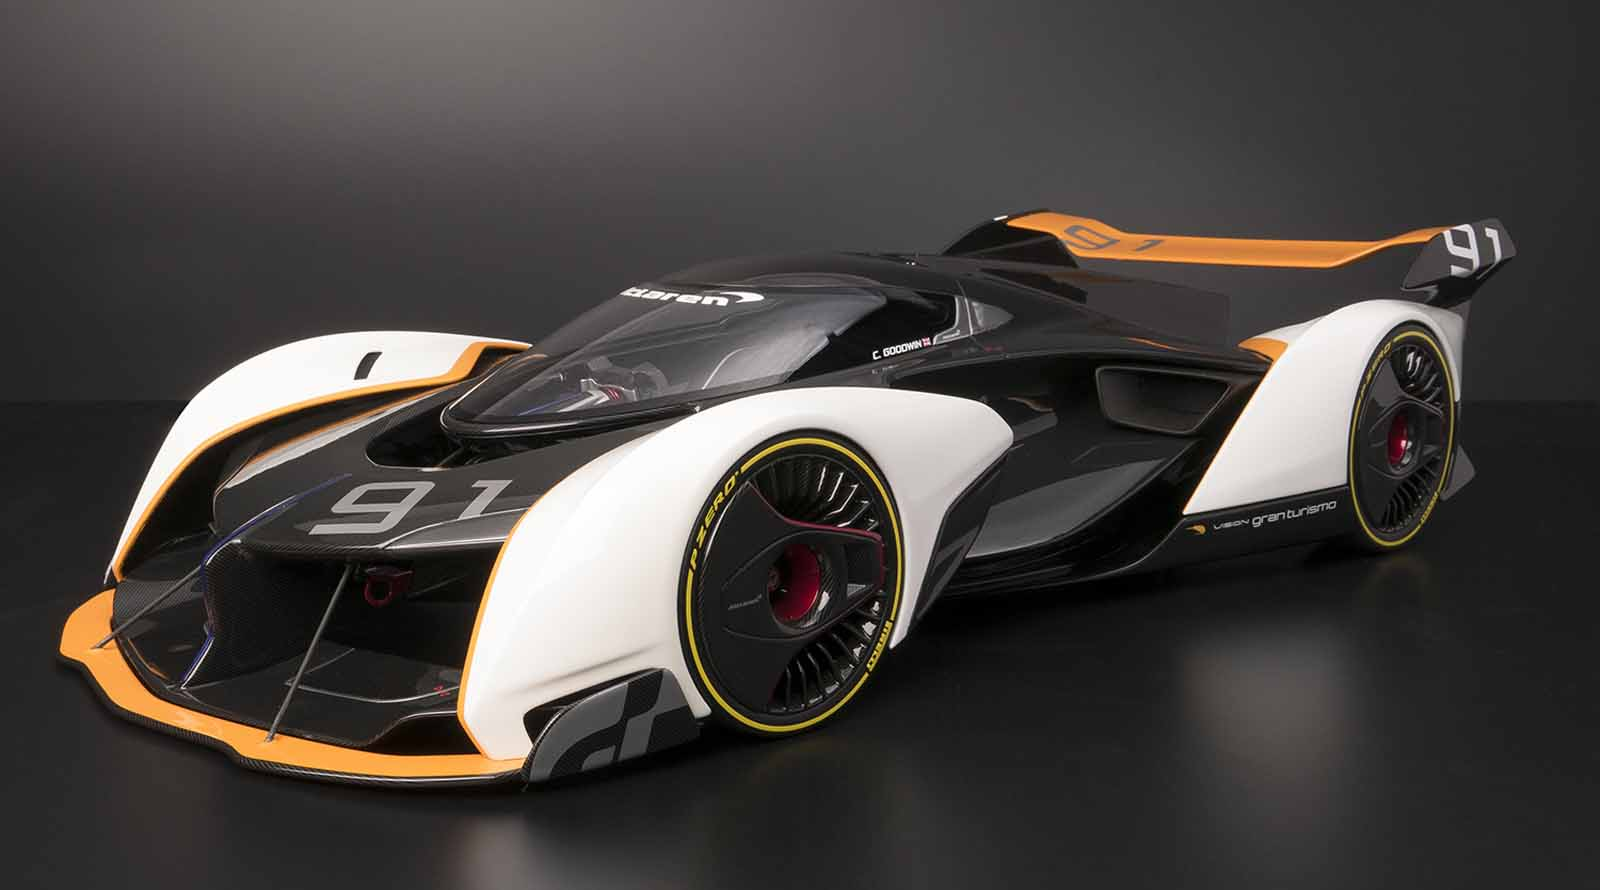 Where Can I Get A Loan >> You Can Now Buy the McLaren Vision GT Car in Scale Model ...